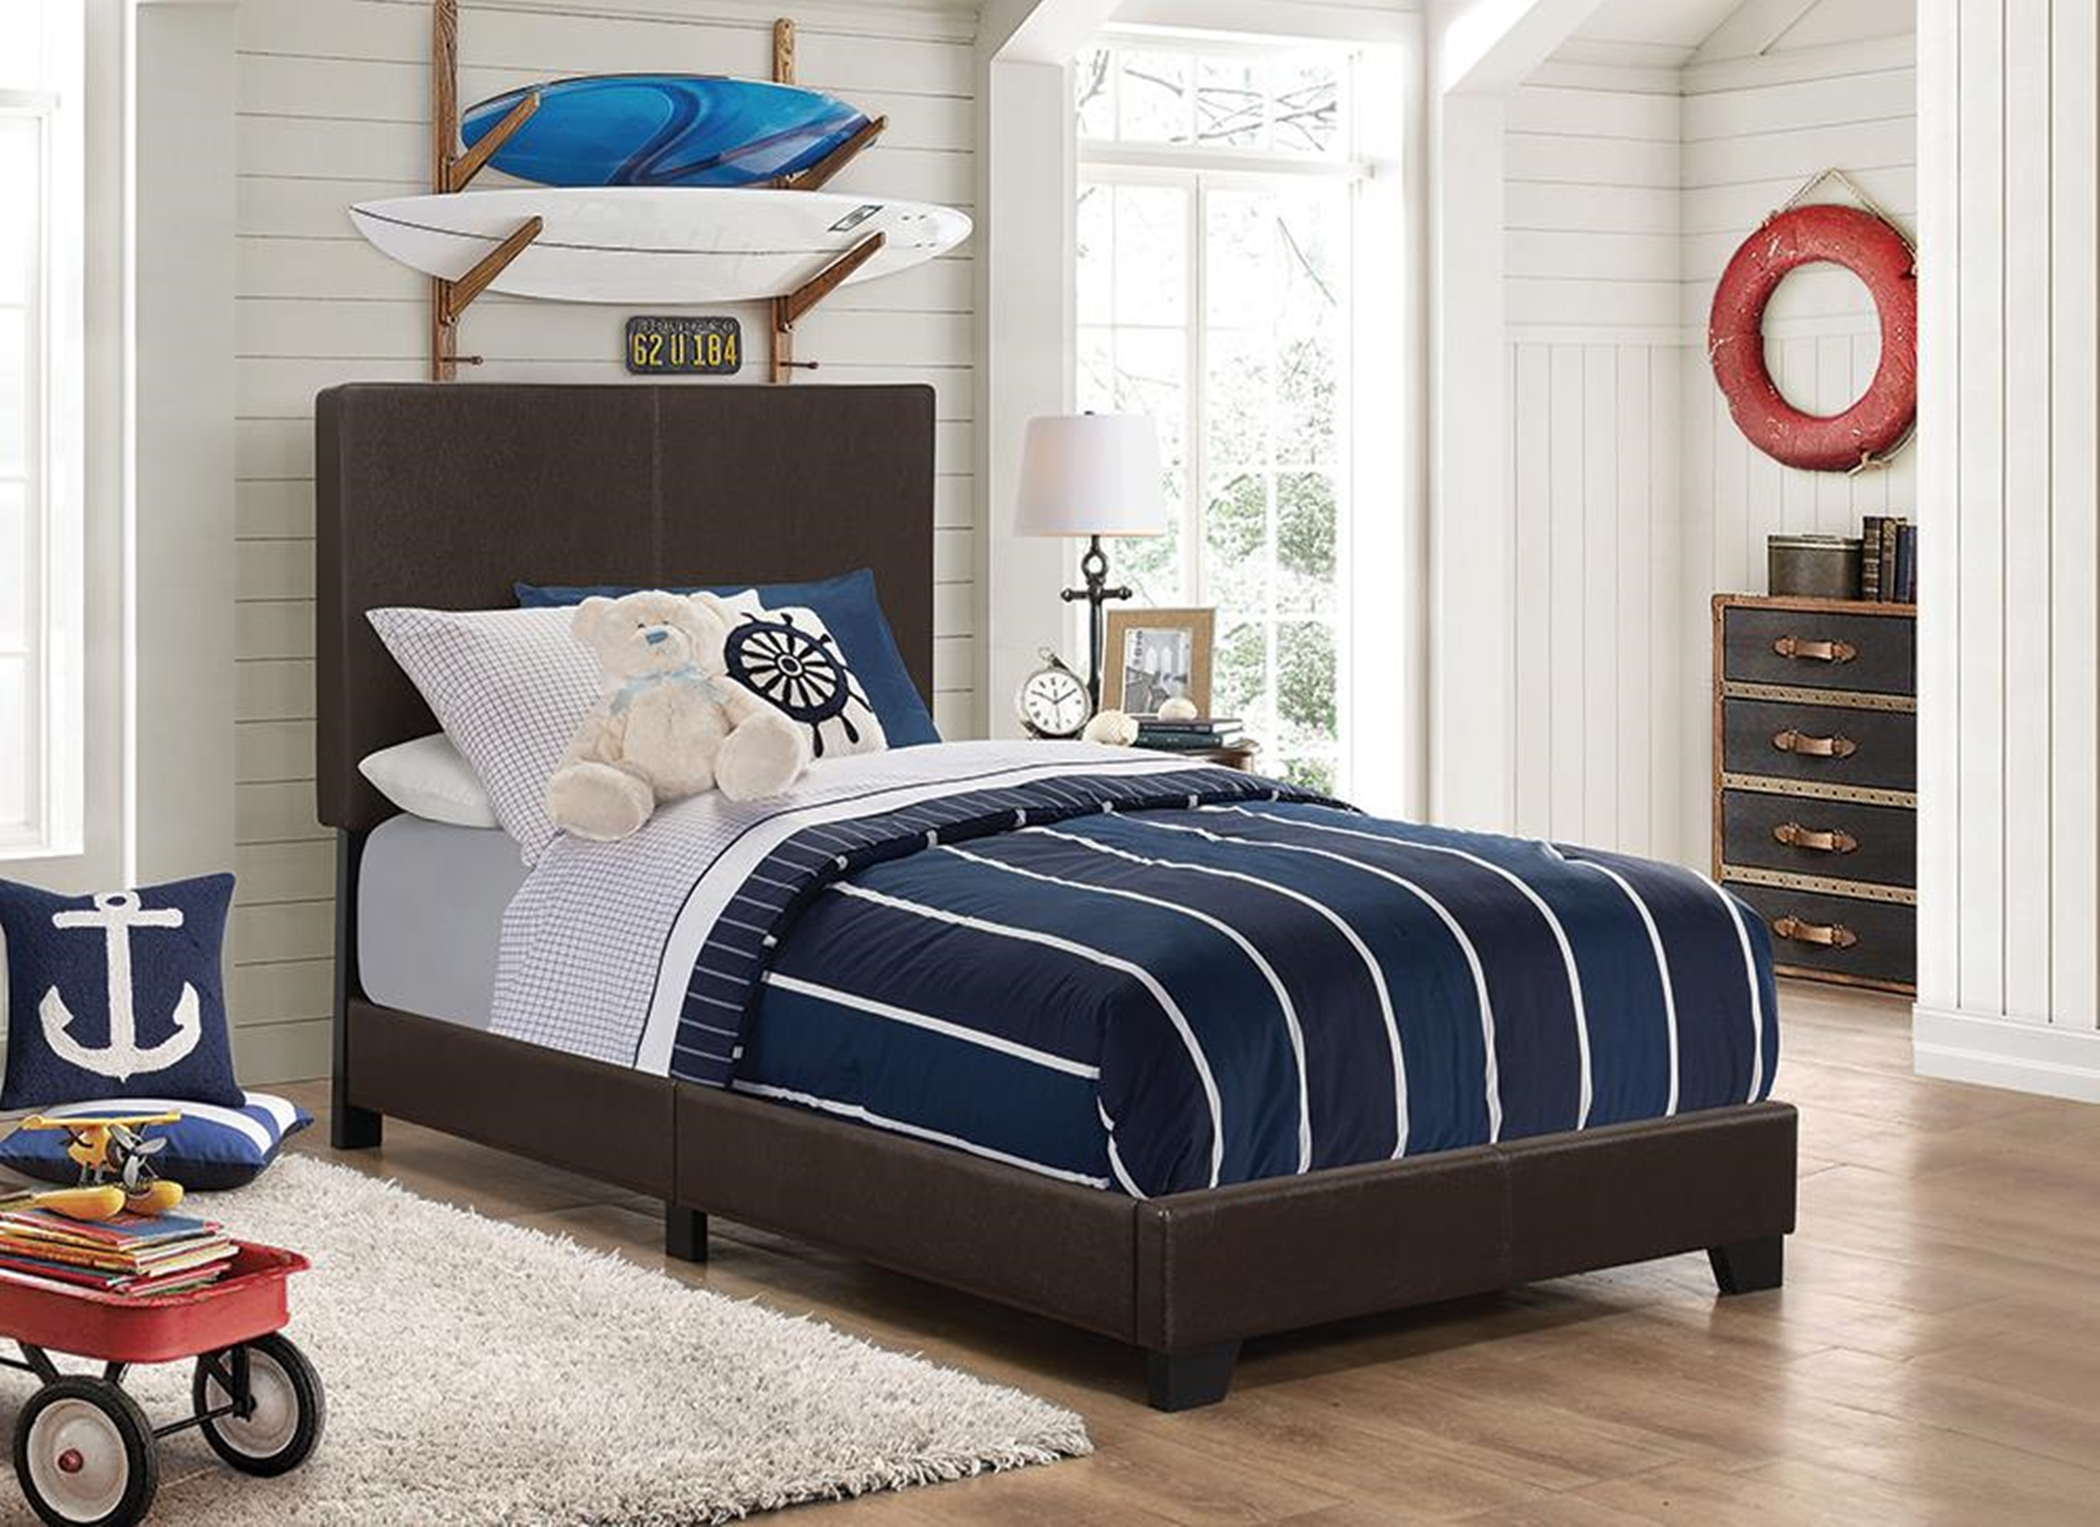 Dorian Brown Faux Leather Twin Bed